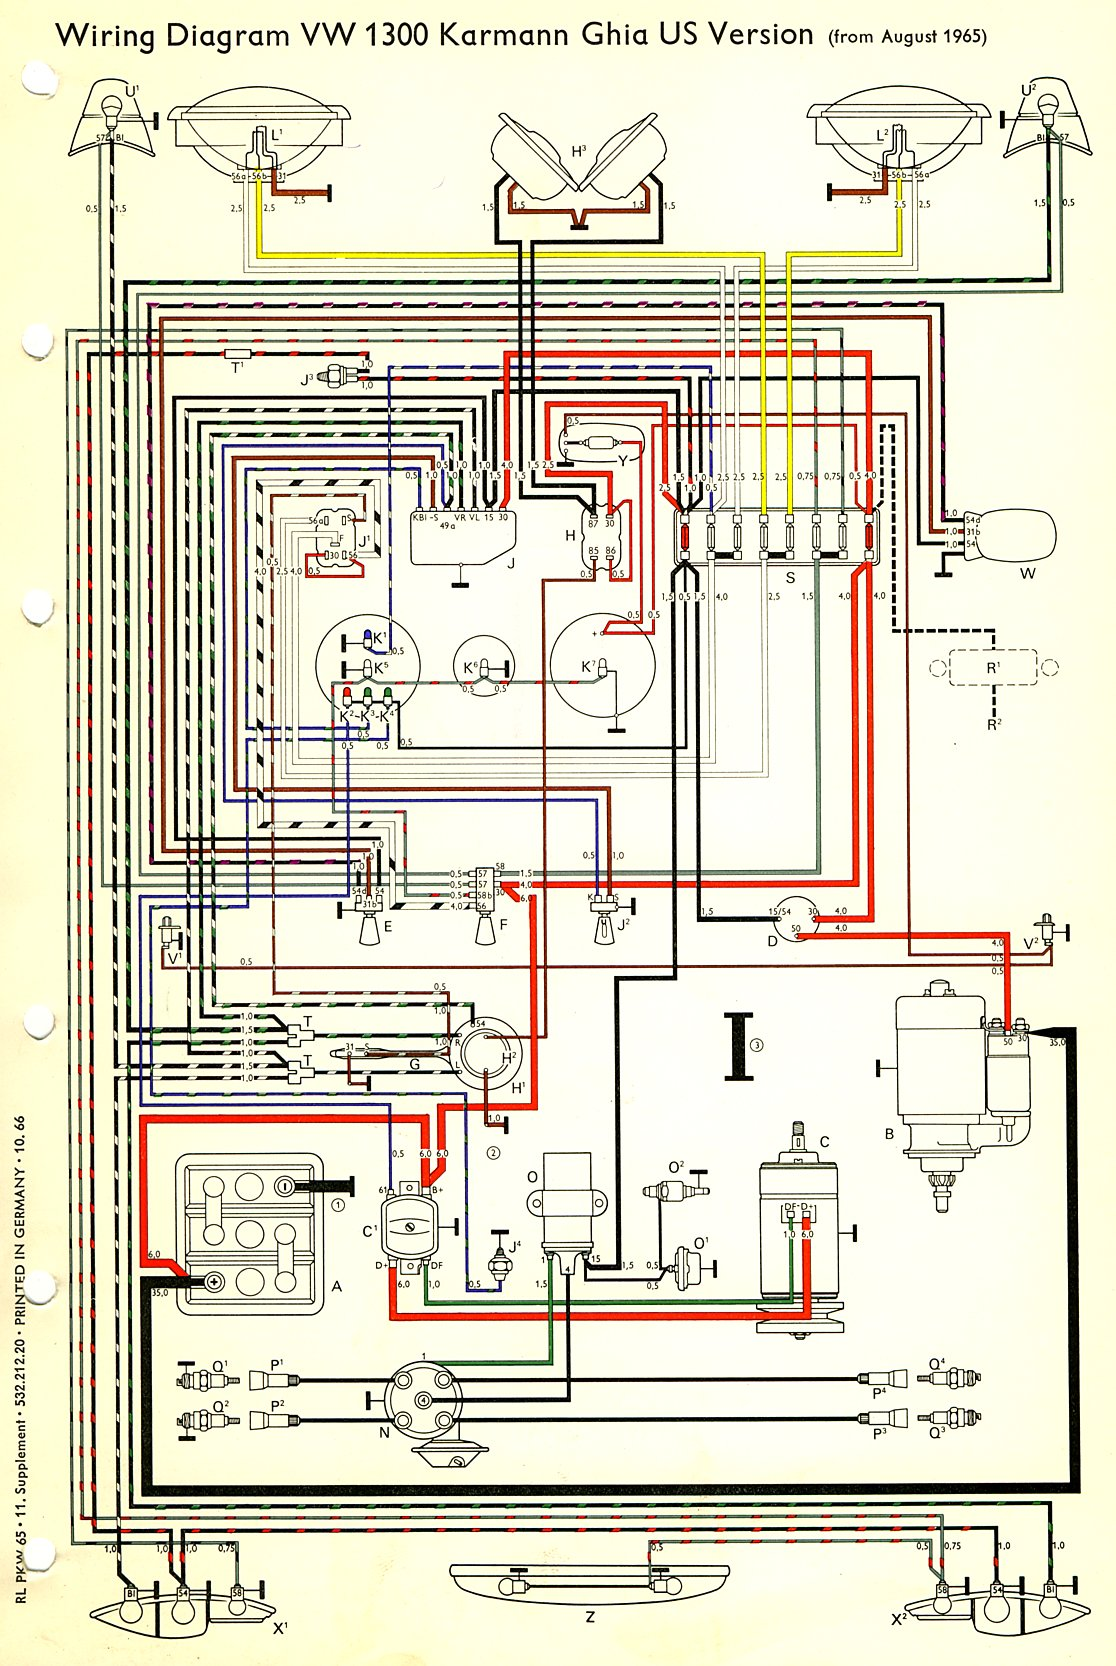 ghia_66_USA thesamba com karmann ghia wiring diagrams vw golf 3 electrical wiring diagram at mifinder.co